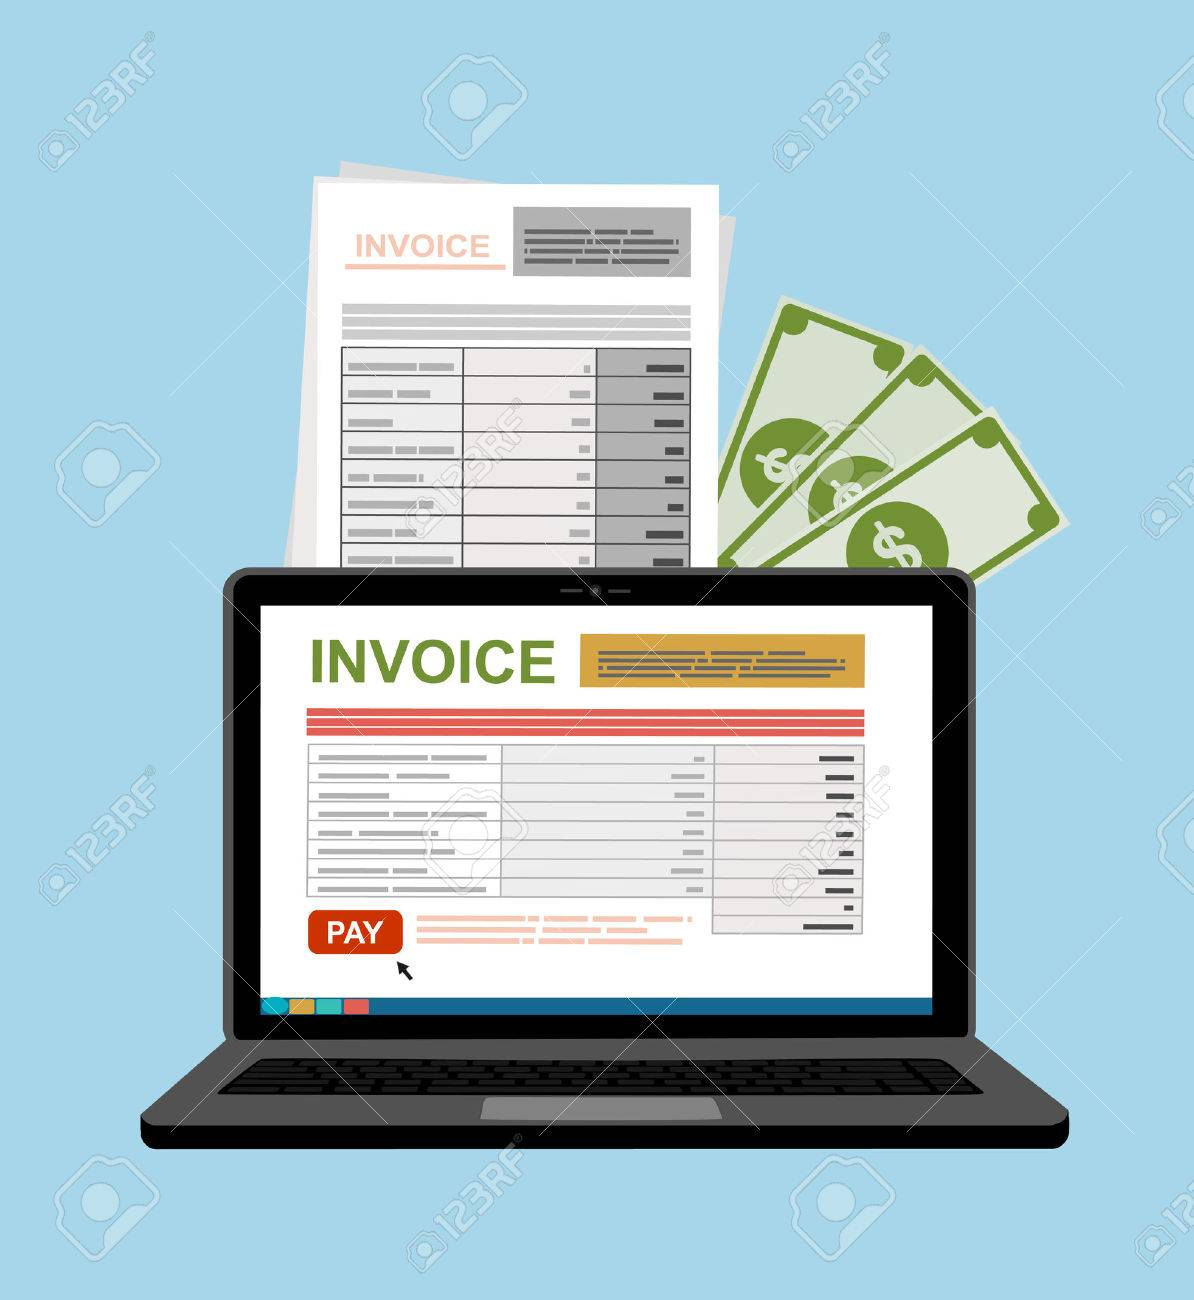 Online Digital Invoice Laptop Or Notebook With Bills, Money, Flat Design  Illustration Stock Vector  Digital Invoices